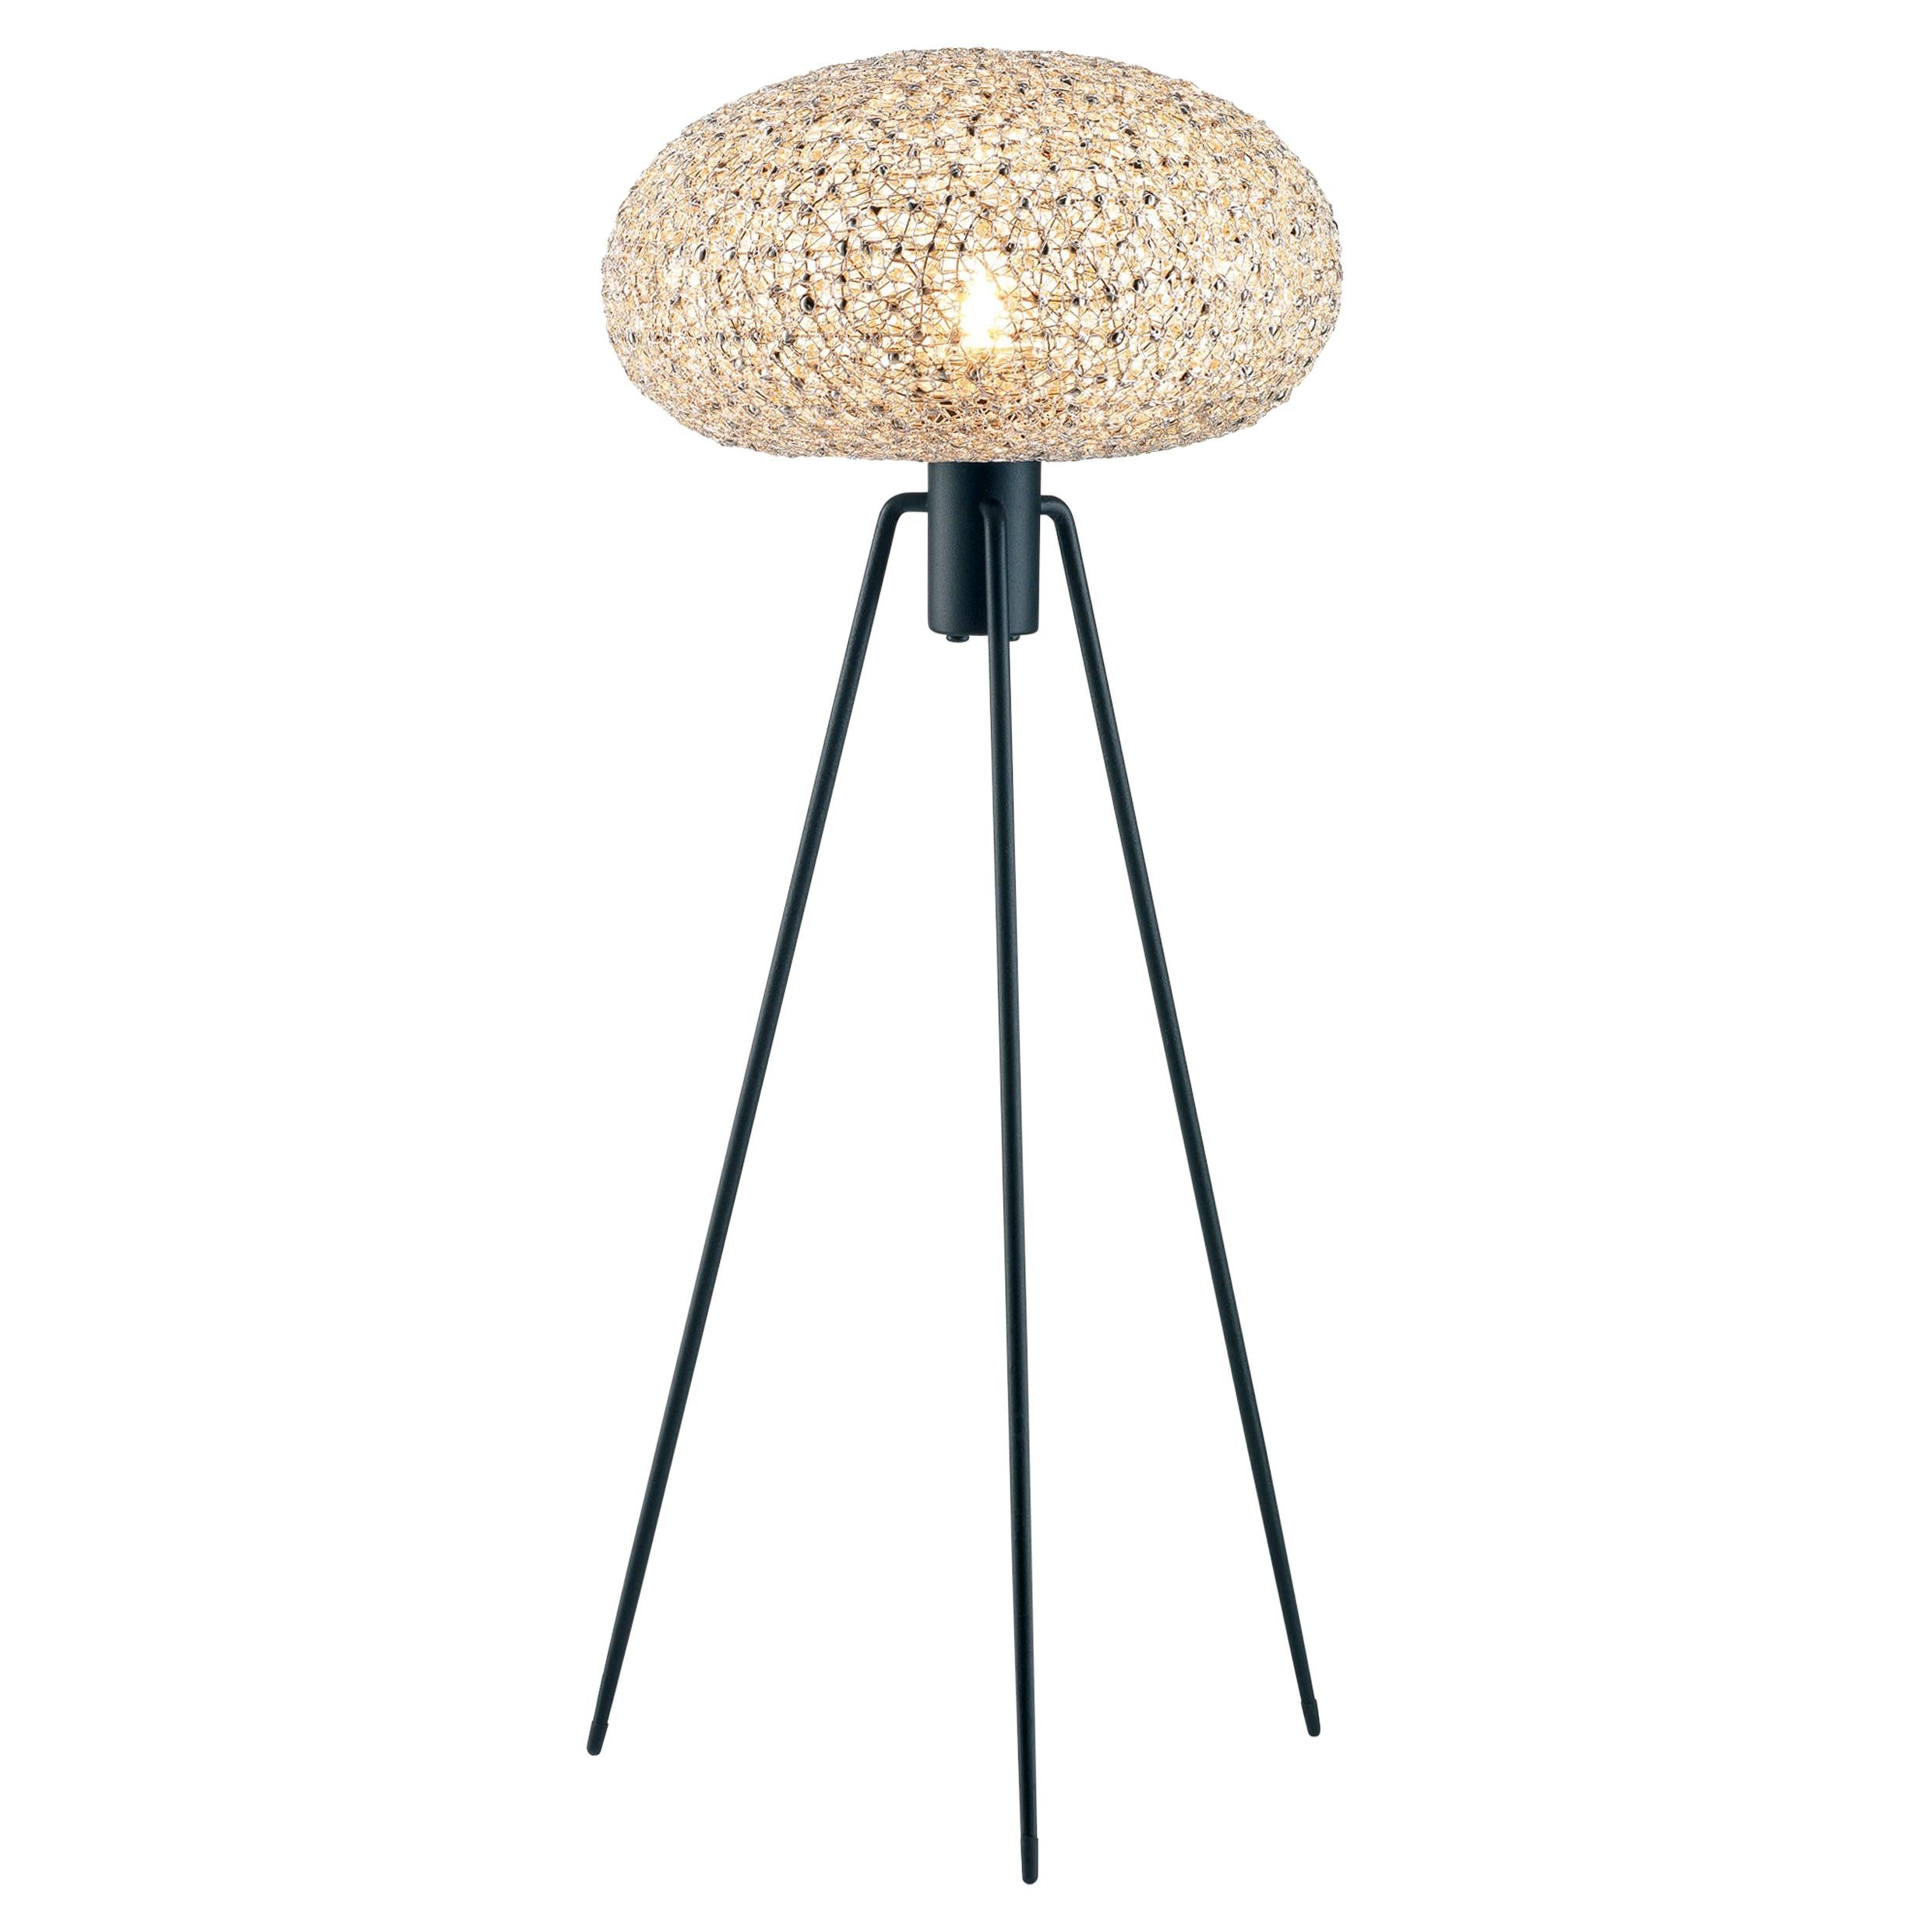 Electro T by Ango, Unique Table Lamp in Hand Crafted Jewellery Technique